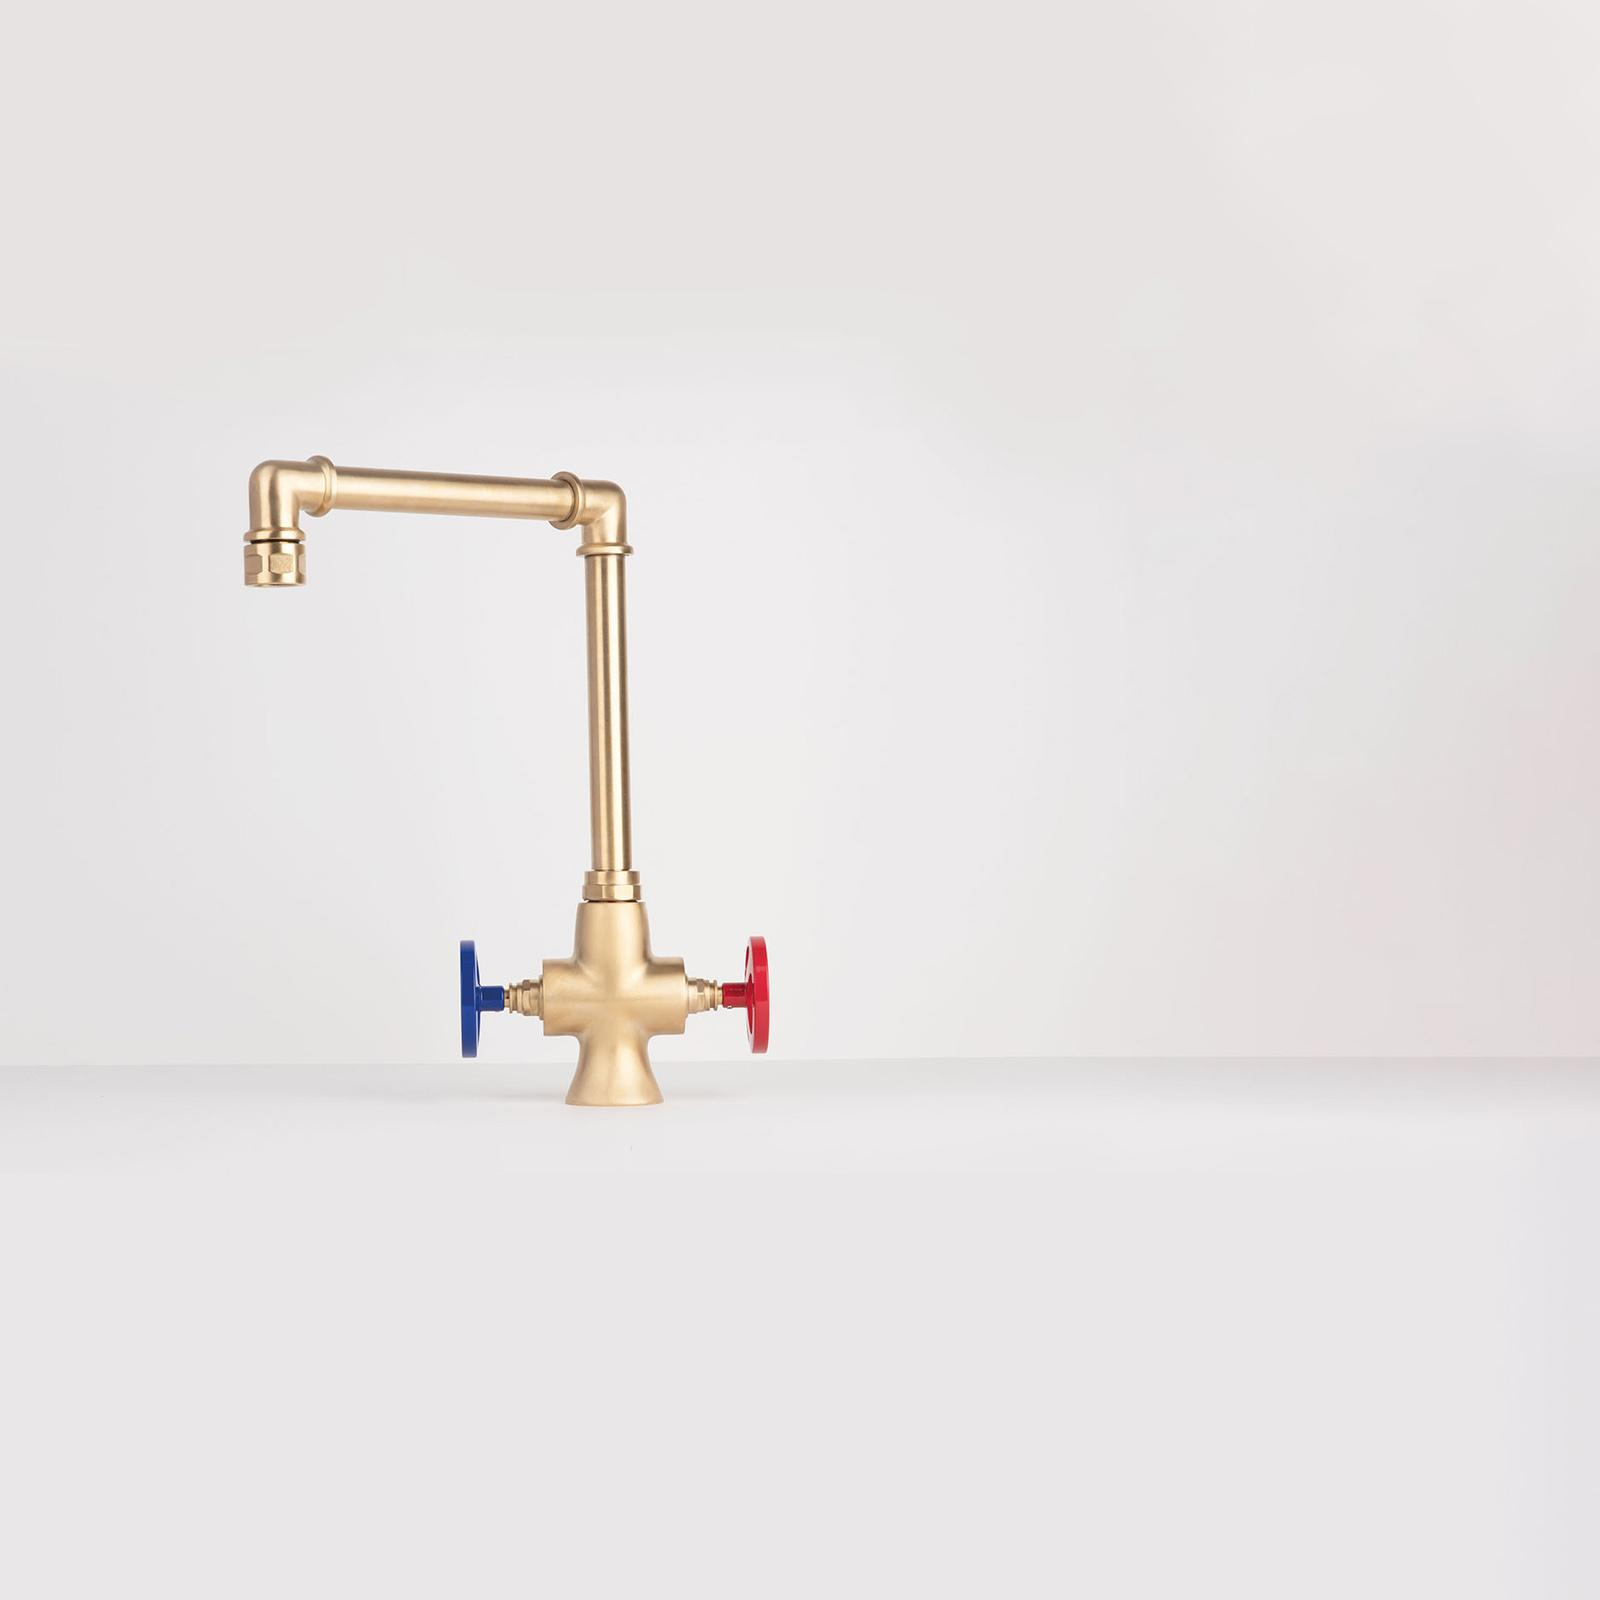 High-quality mixer tap Queen - rc941091 - 2